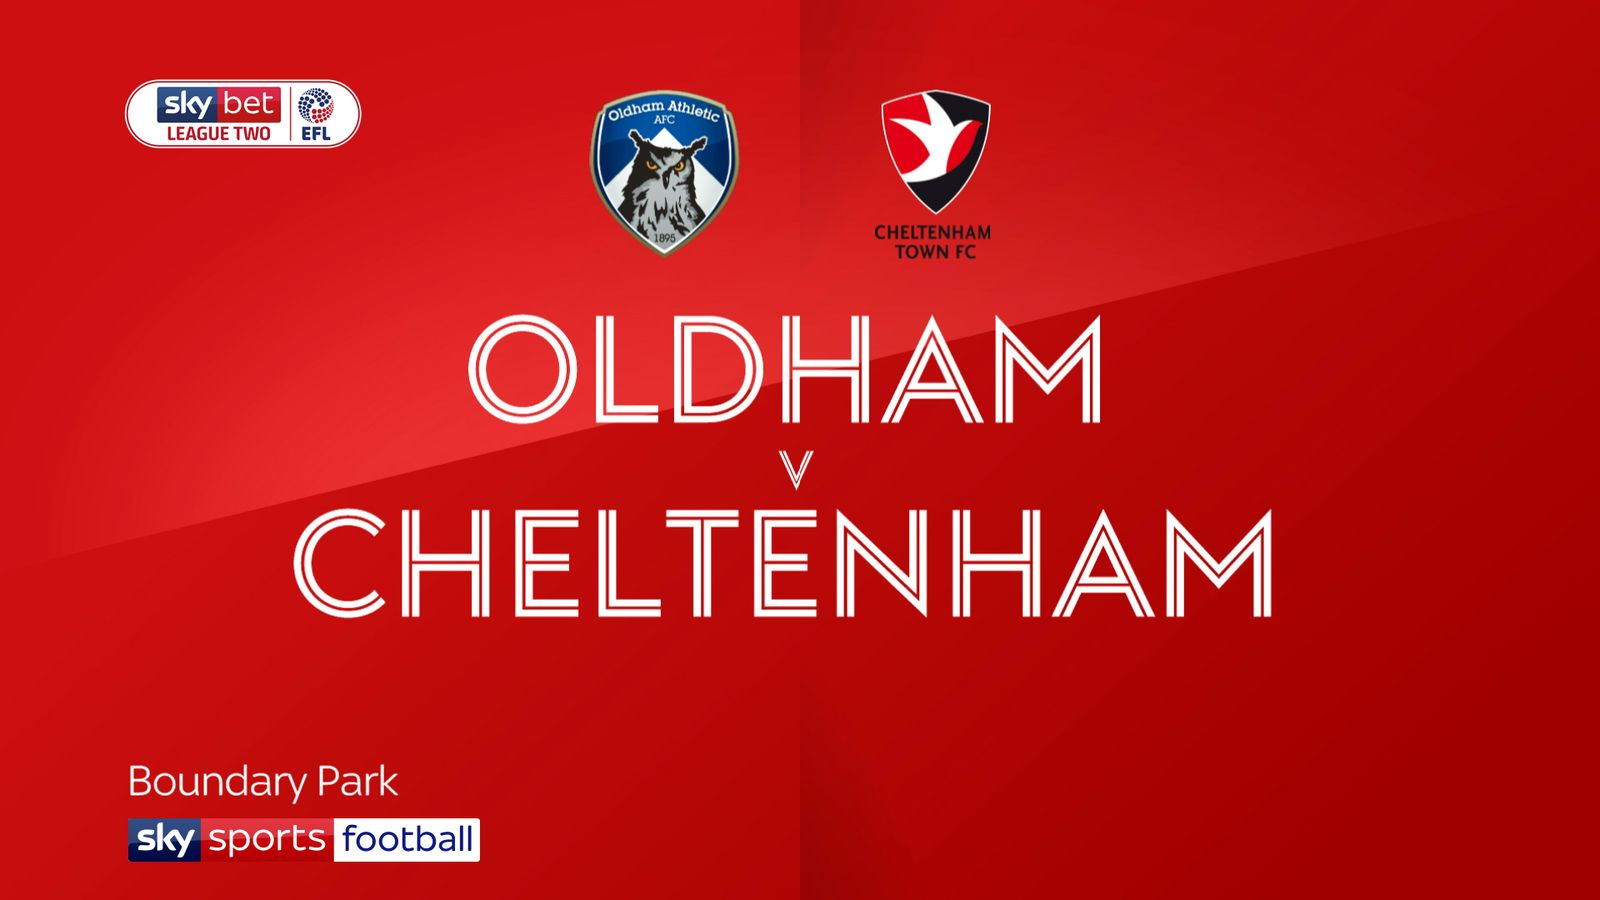 Oldham 1-1 Cheltenham: Town miss chance to move top of League Two